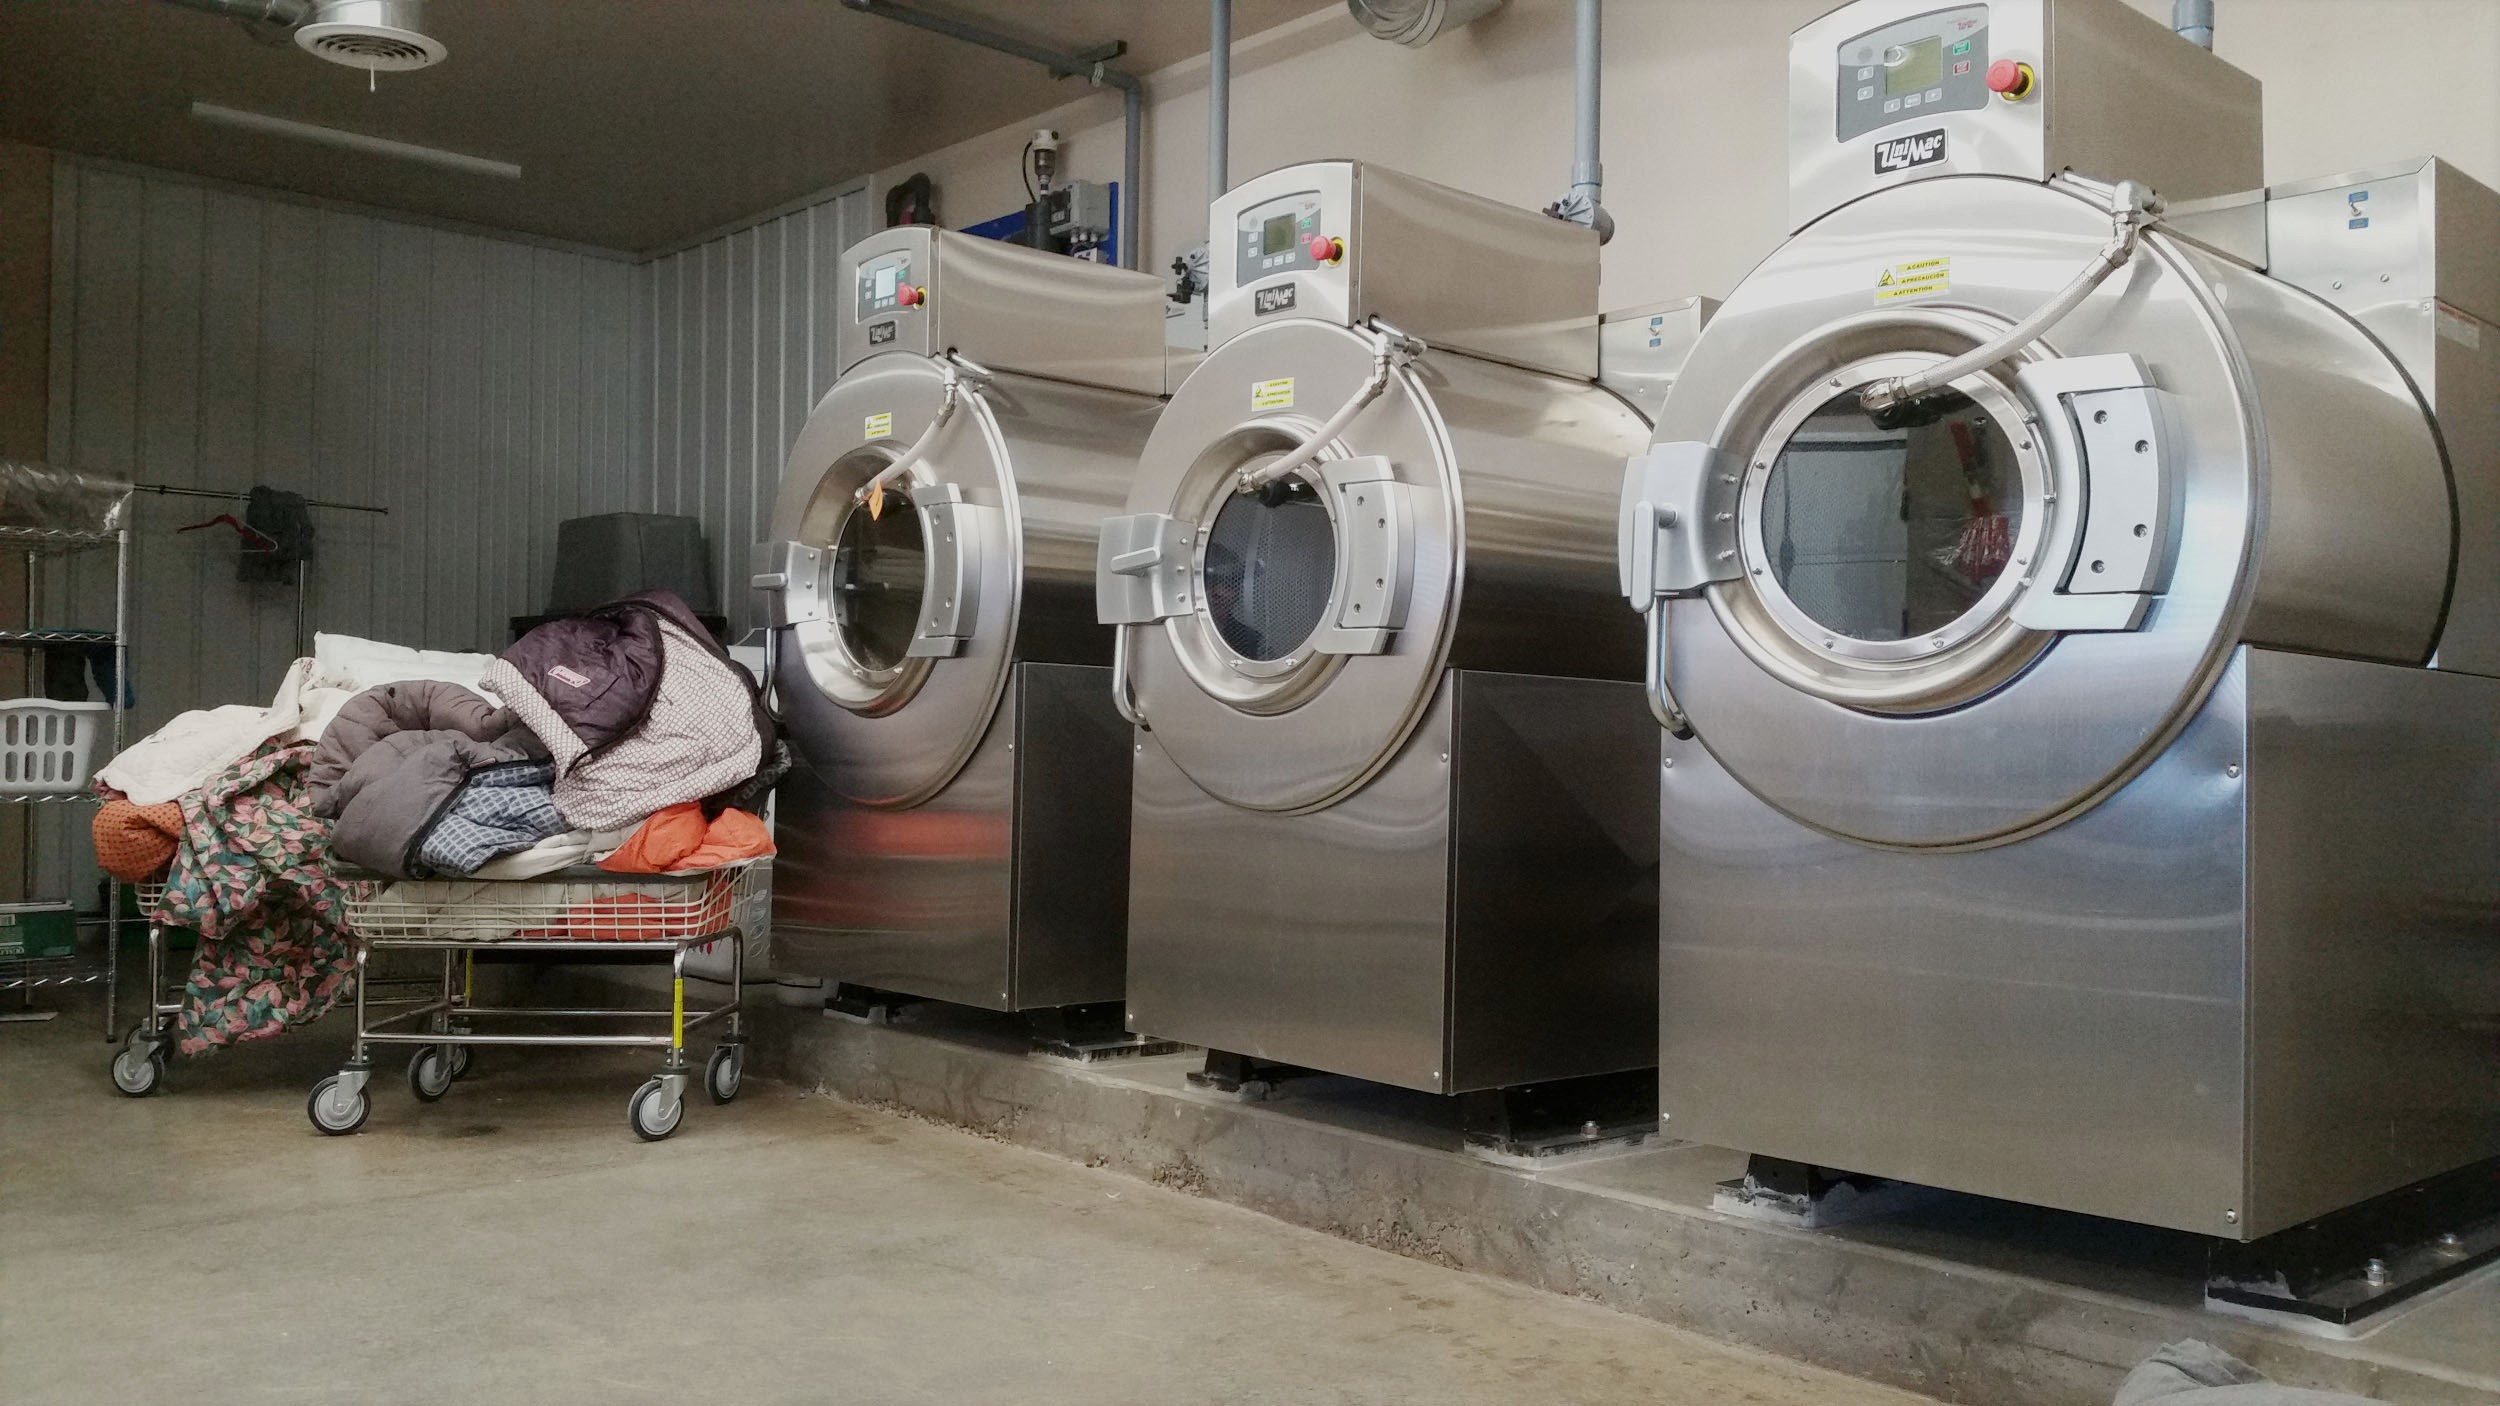 Moab Wash And Fold Commercial And Individual Laundry Service